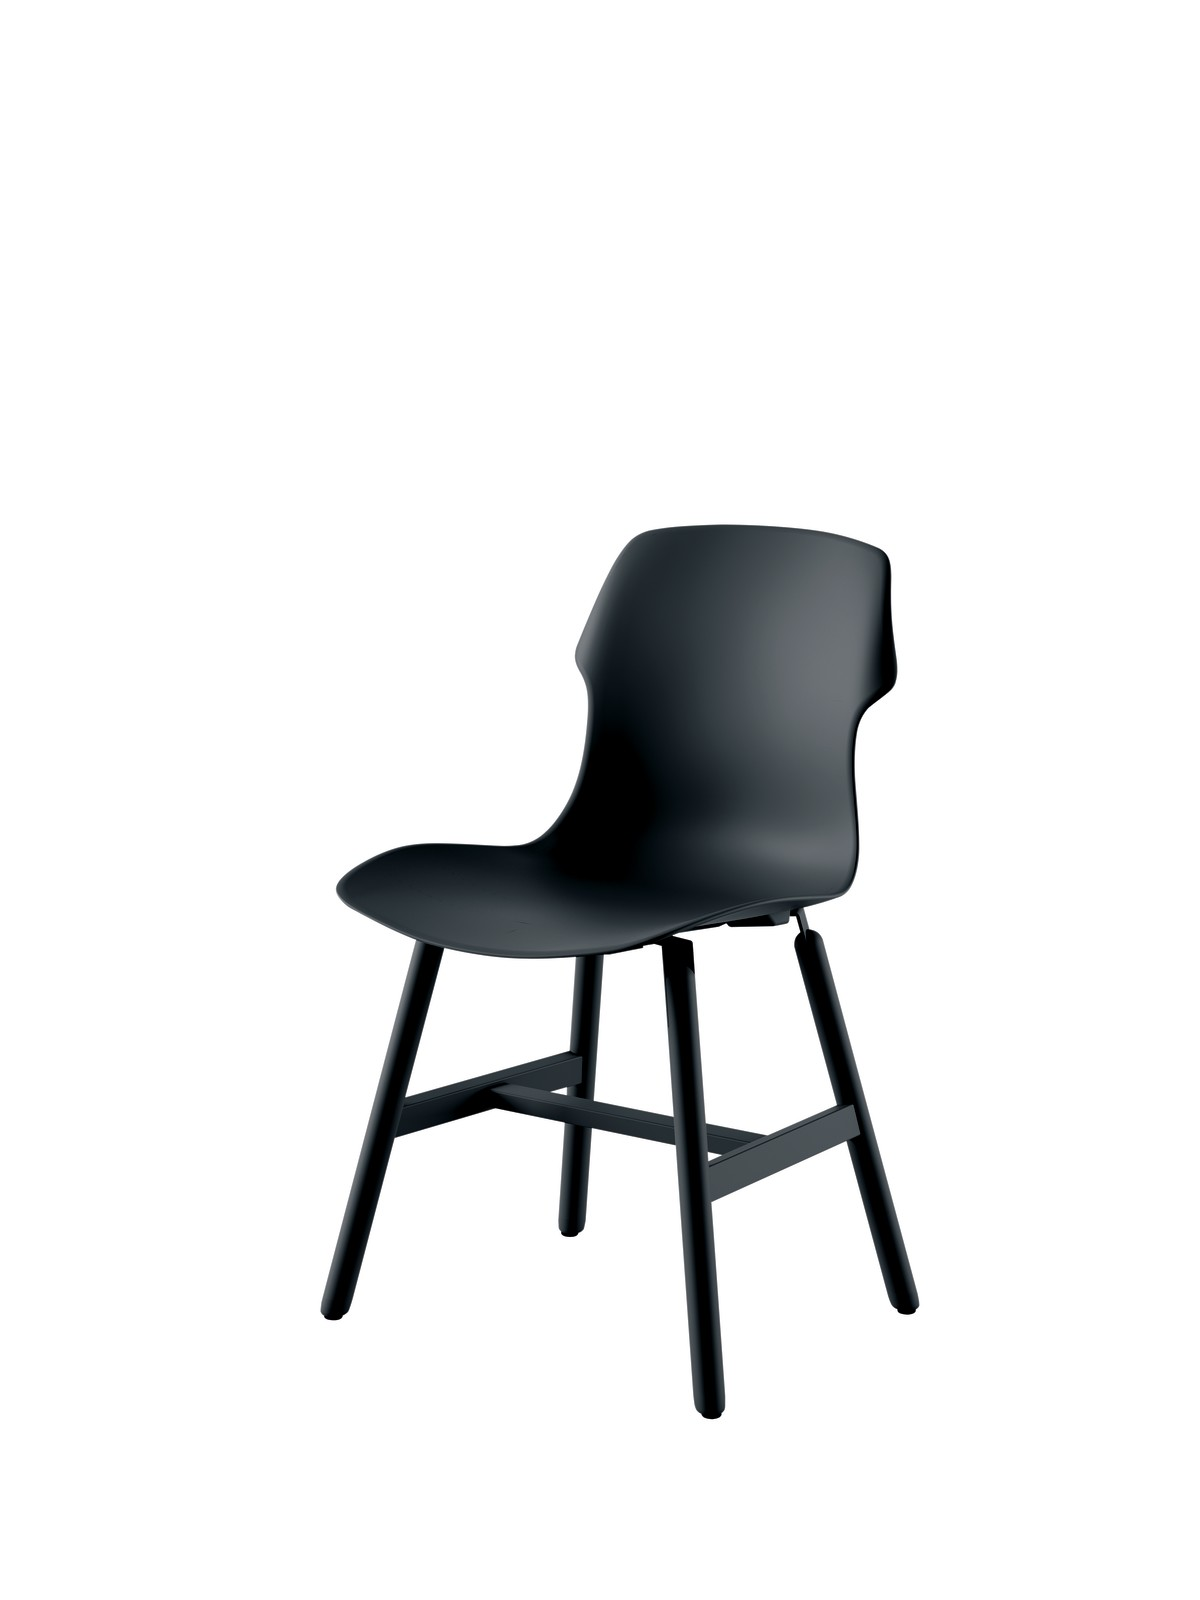 Stereo Metal Chair - Set of 2 Black